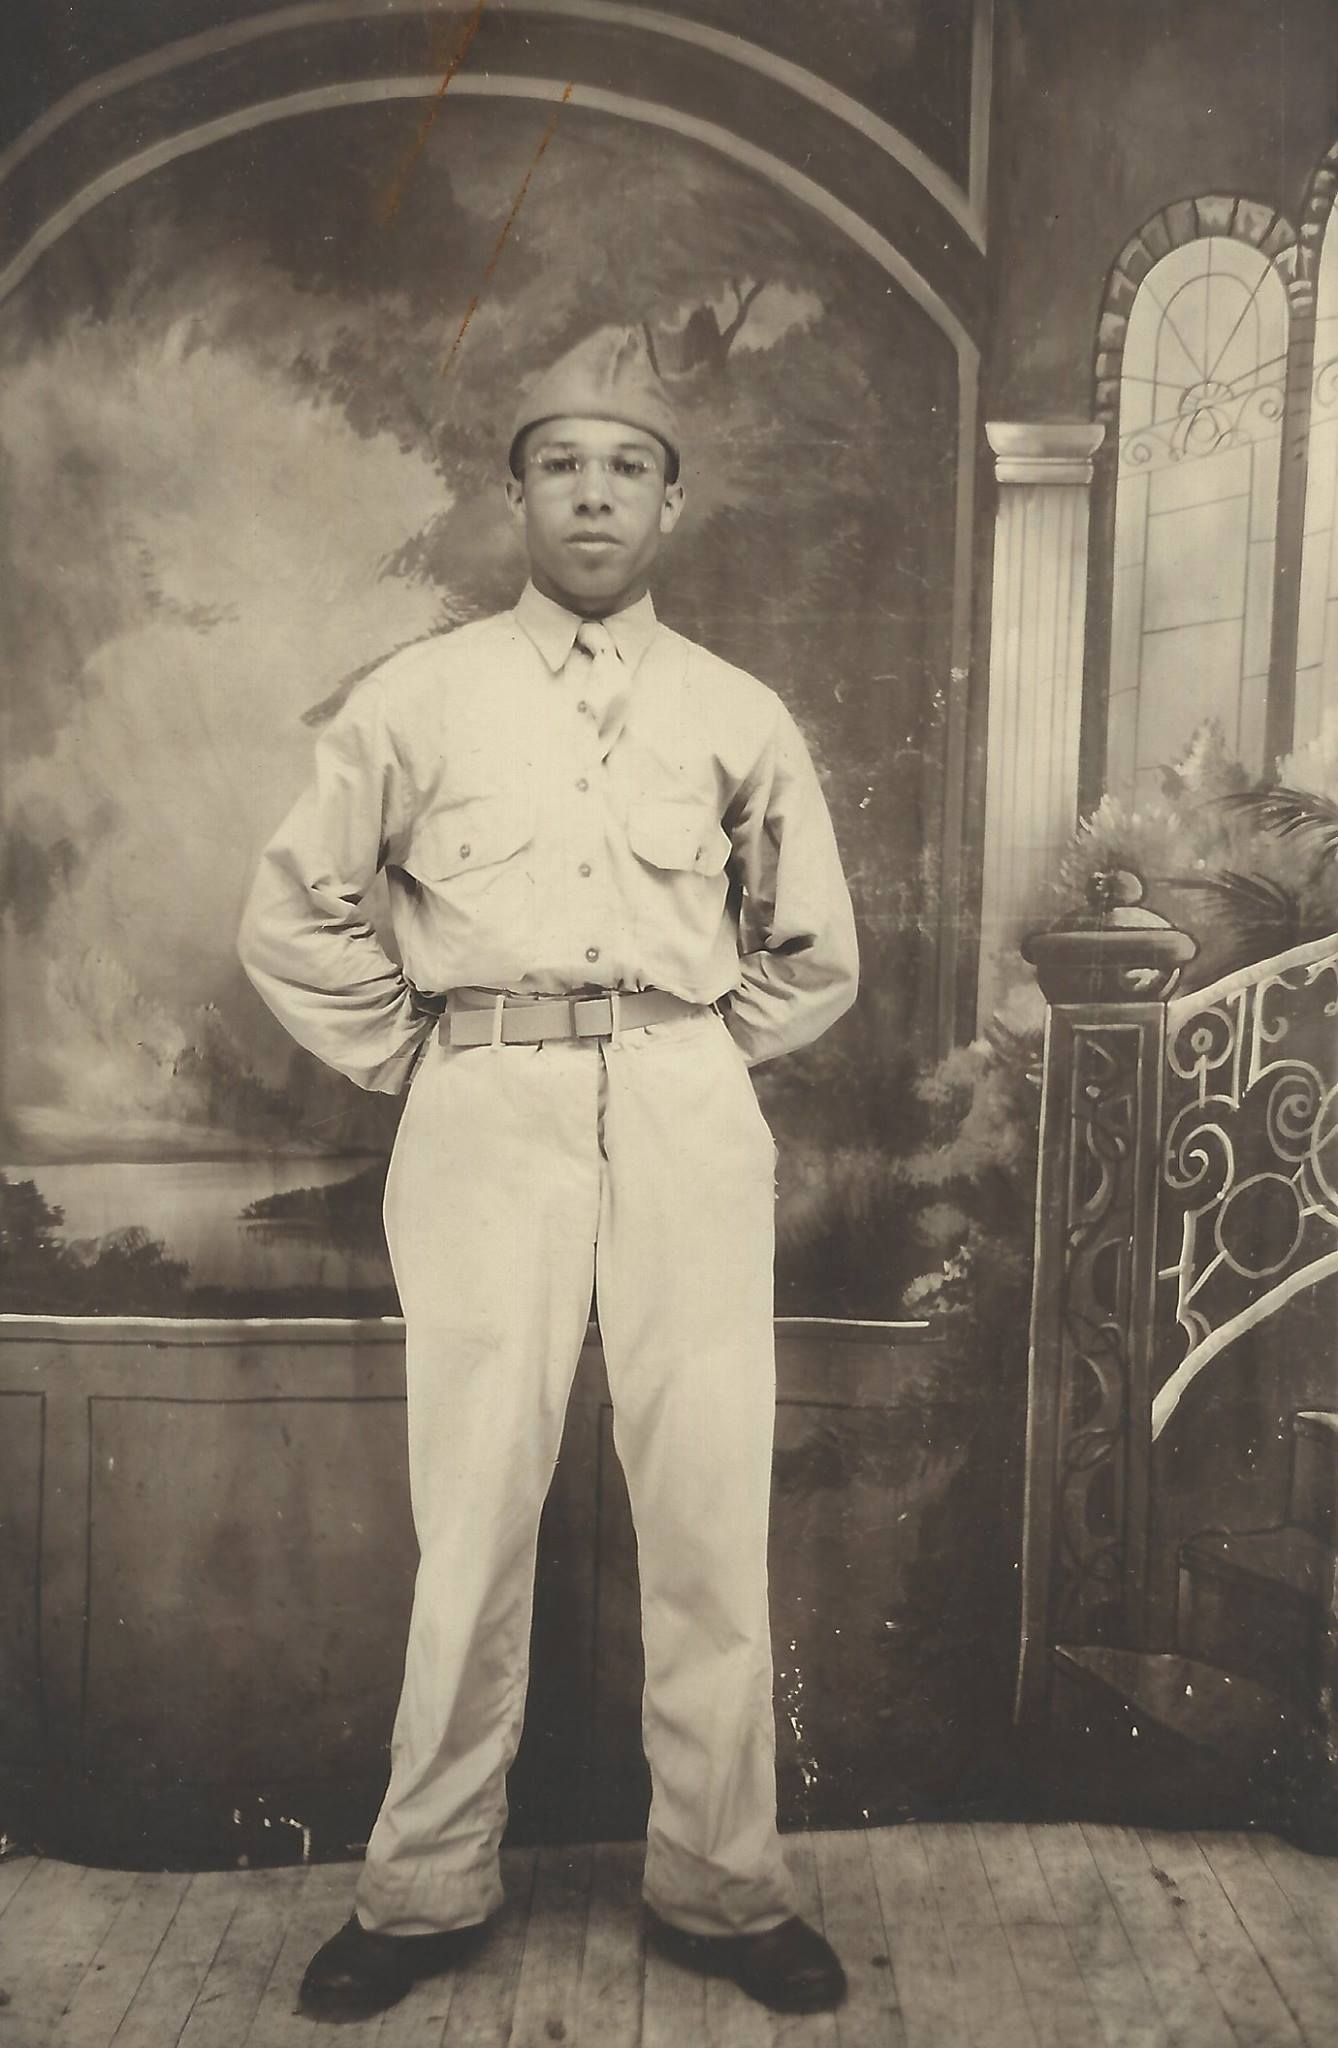 Three quarter length portrait of a Black G.I. proudly posing for the camera in military uniform with a photography studio backdrop.